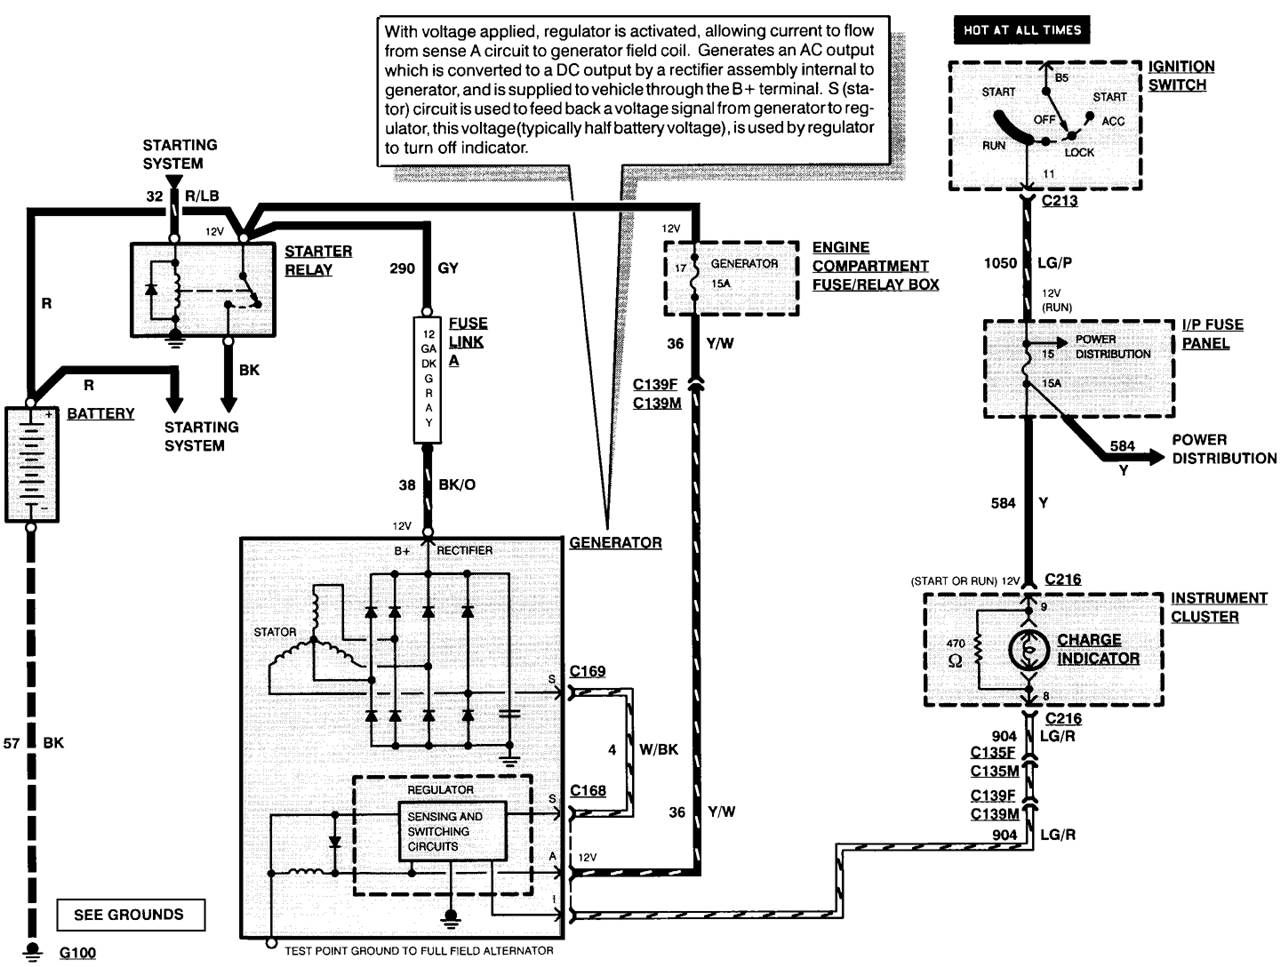 1987 Ford Ranger Alternator Wiring Diagram : Gm power steering box diagram free engine image for